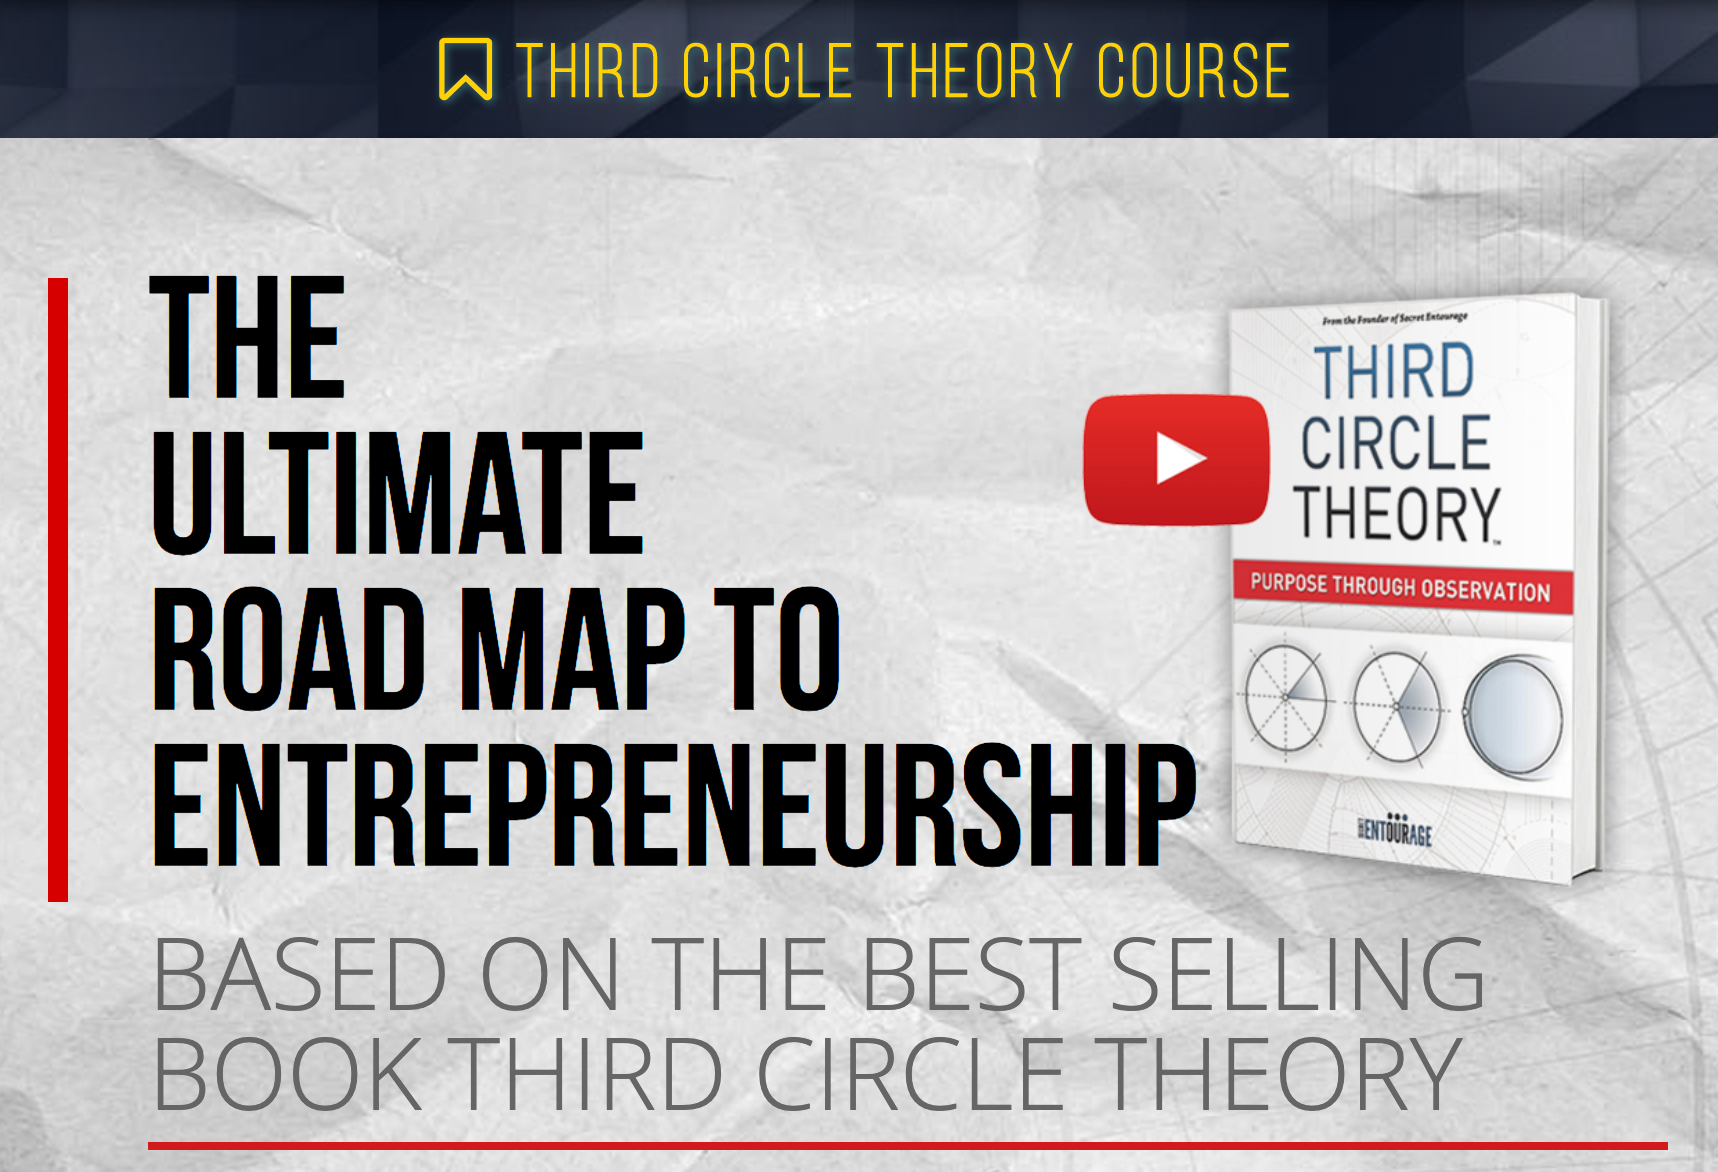 Third Circle Theory Course – Secret Entourage